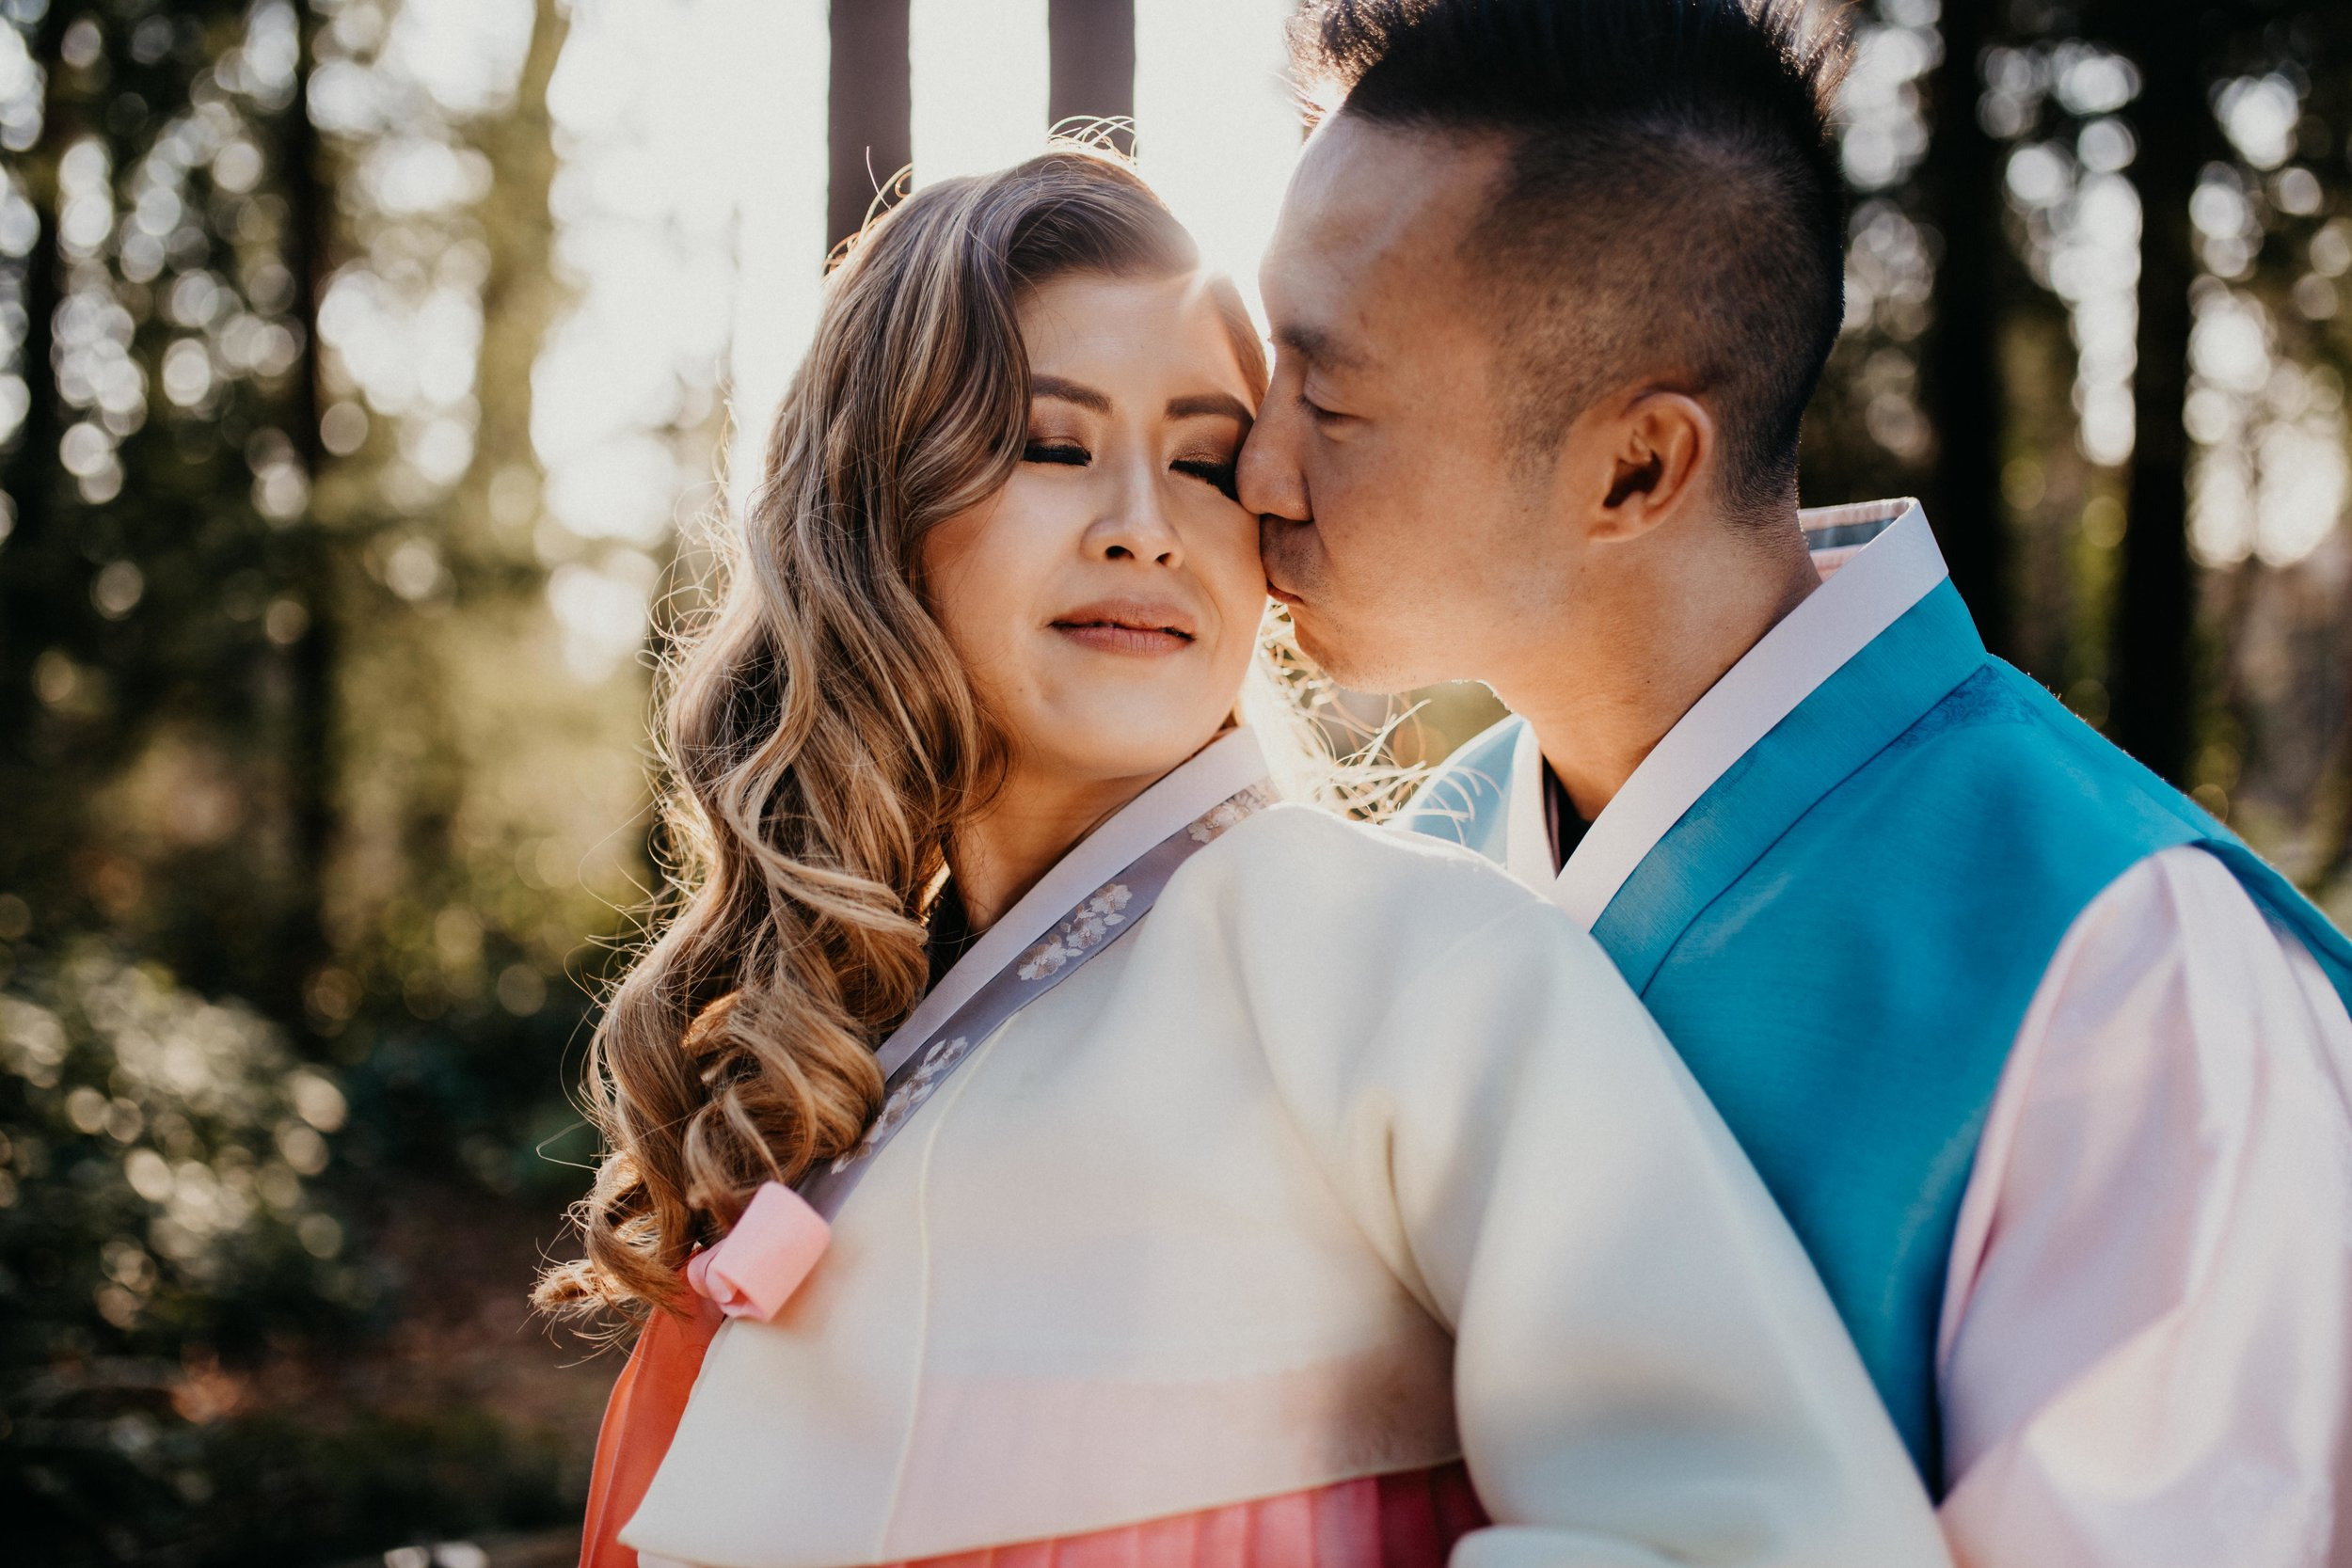 Christina & Eddie Engagement  March 23rd, 2019  Location: Gastown & Stanley Park  Photos shot on: Canon EOS R, Canon Mark IV, Fujifilm X-T3